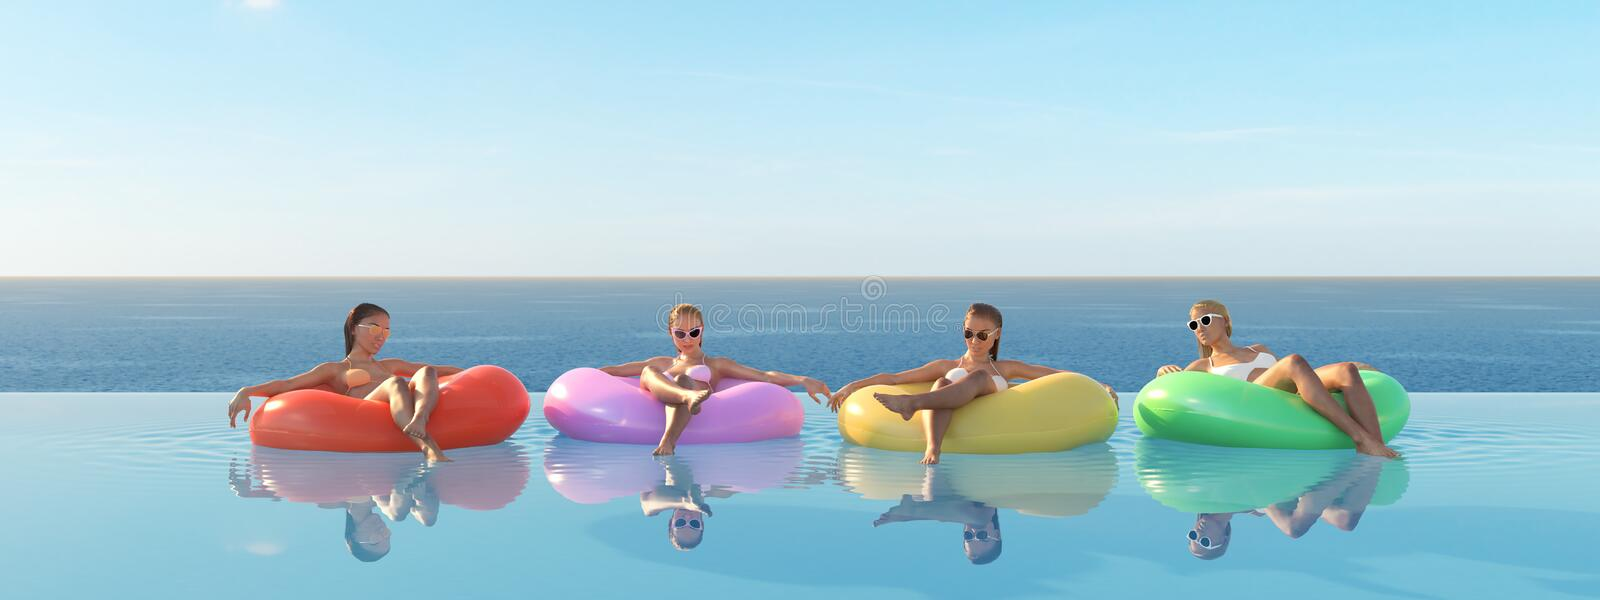 3D-Illustration of women swimming on float in a pool. stock illustration